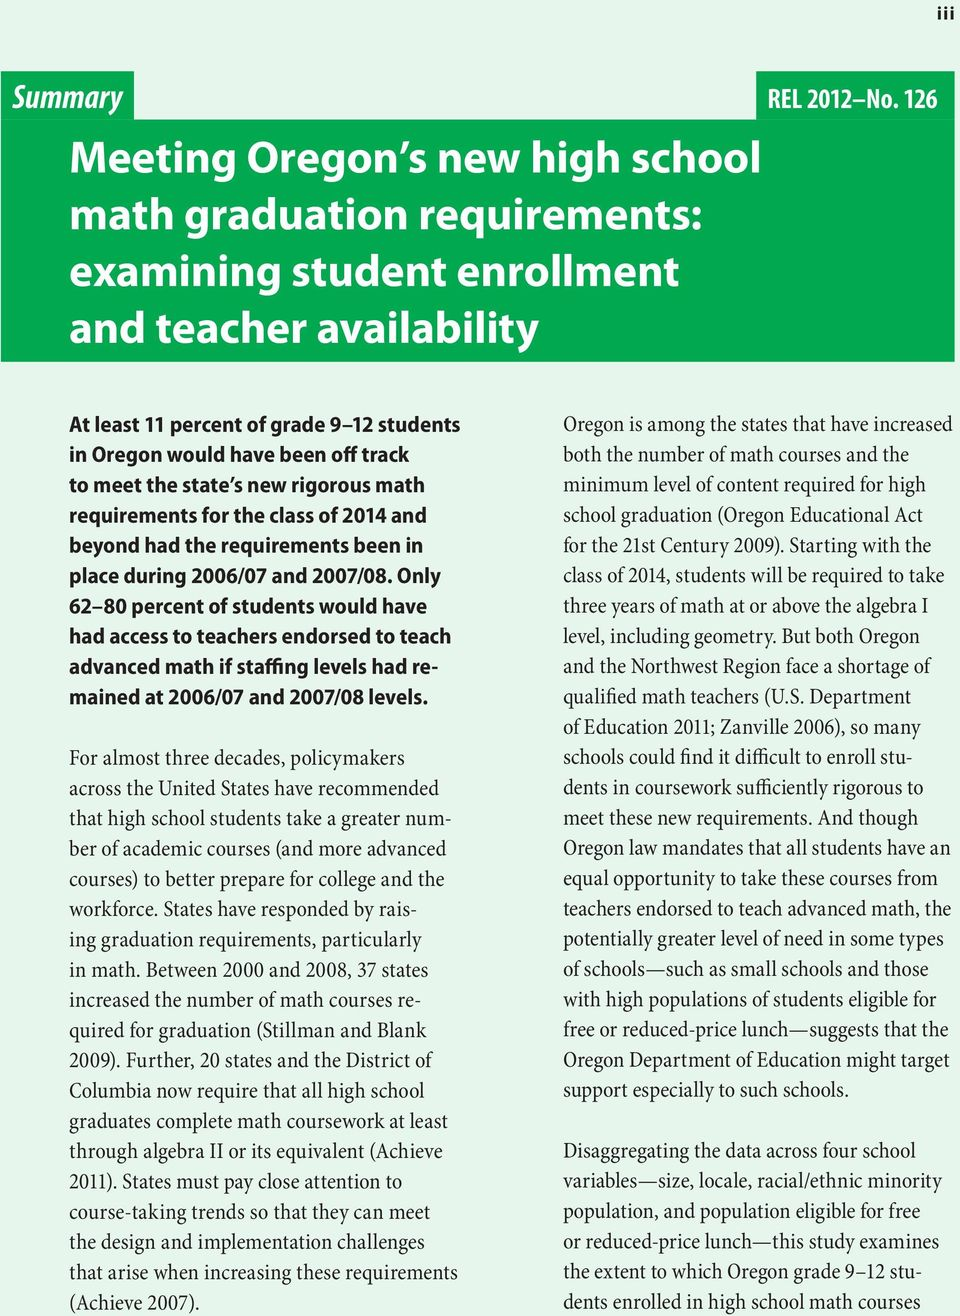 place during 2006/07 and 2007/08. Only 62 80 percent of students would have had access to teachers endorsed to teach advanced math if staffing levels had remained at 2006/07 and 2007/08 levels.